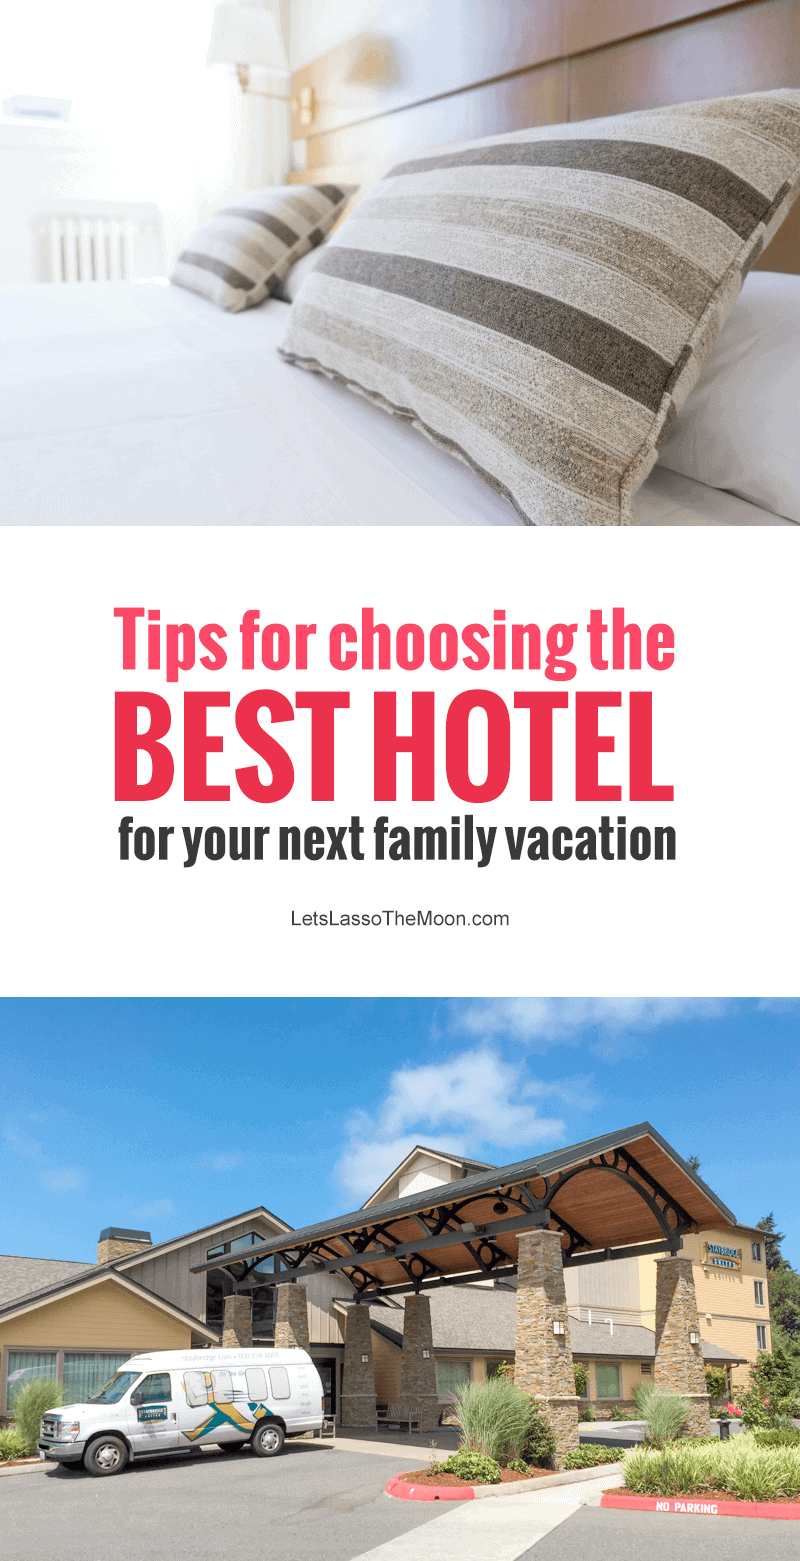 When you're ready to book your next family vacation, check out these helpful tips to help you when choosing your hotel for your trip. *Great tips on getting the best travel deals